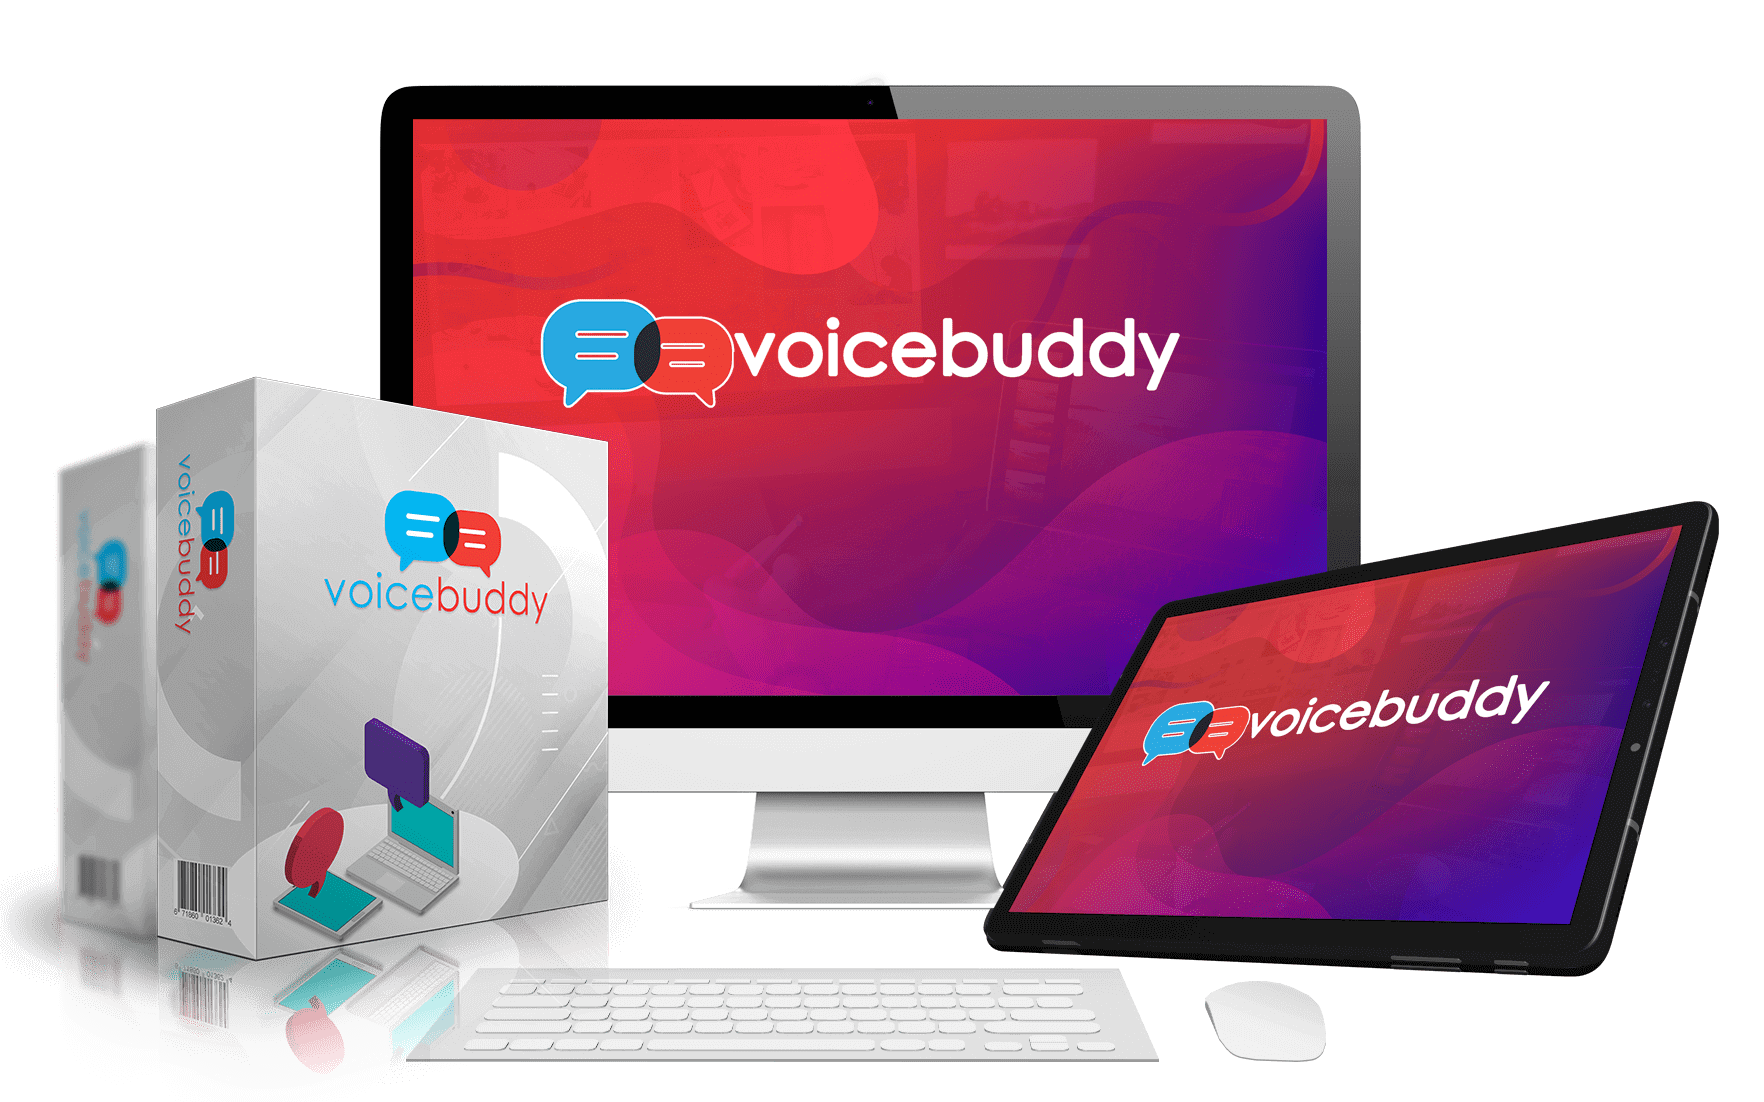 Voice Buddy (FE) + Voice Buddy PRO (OTO1) + Voice Buddy International (OTO2) + Voice Buddy Video & Image Creation Engine (OTO3)